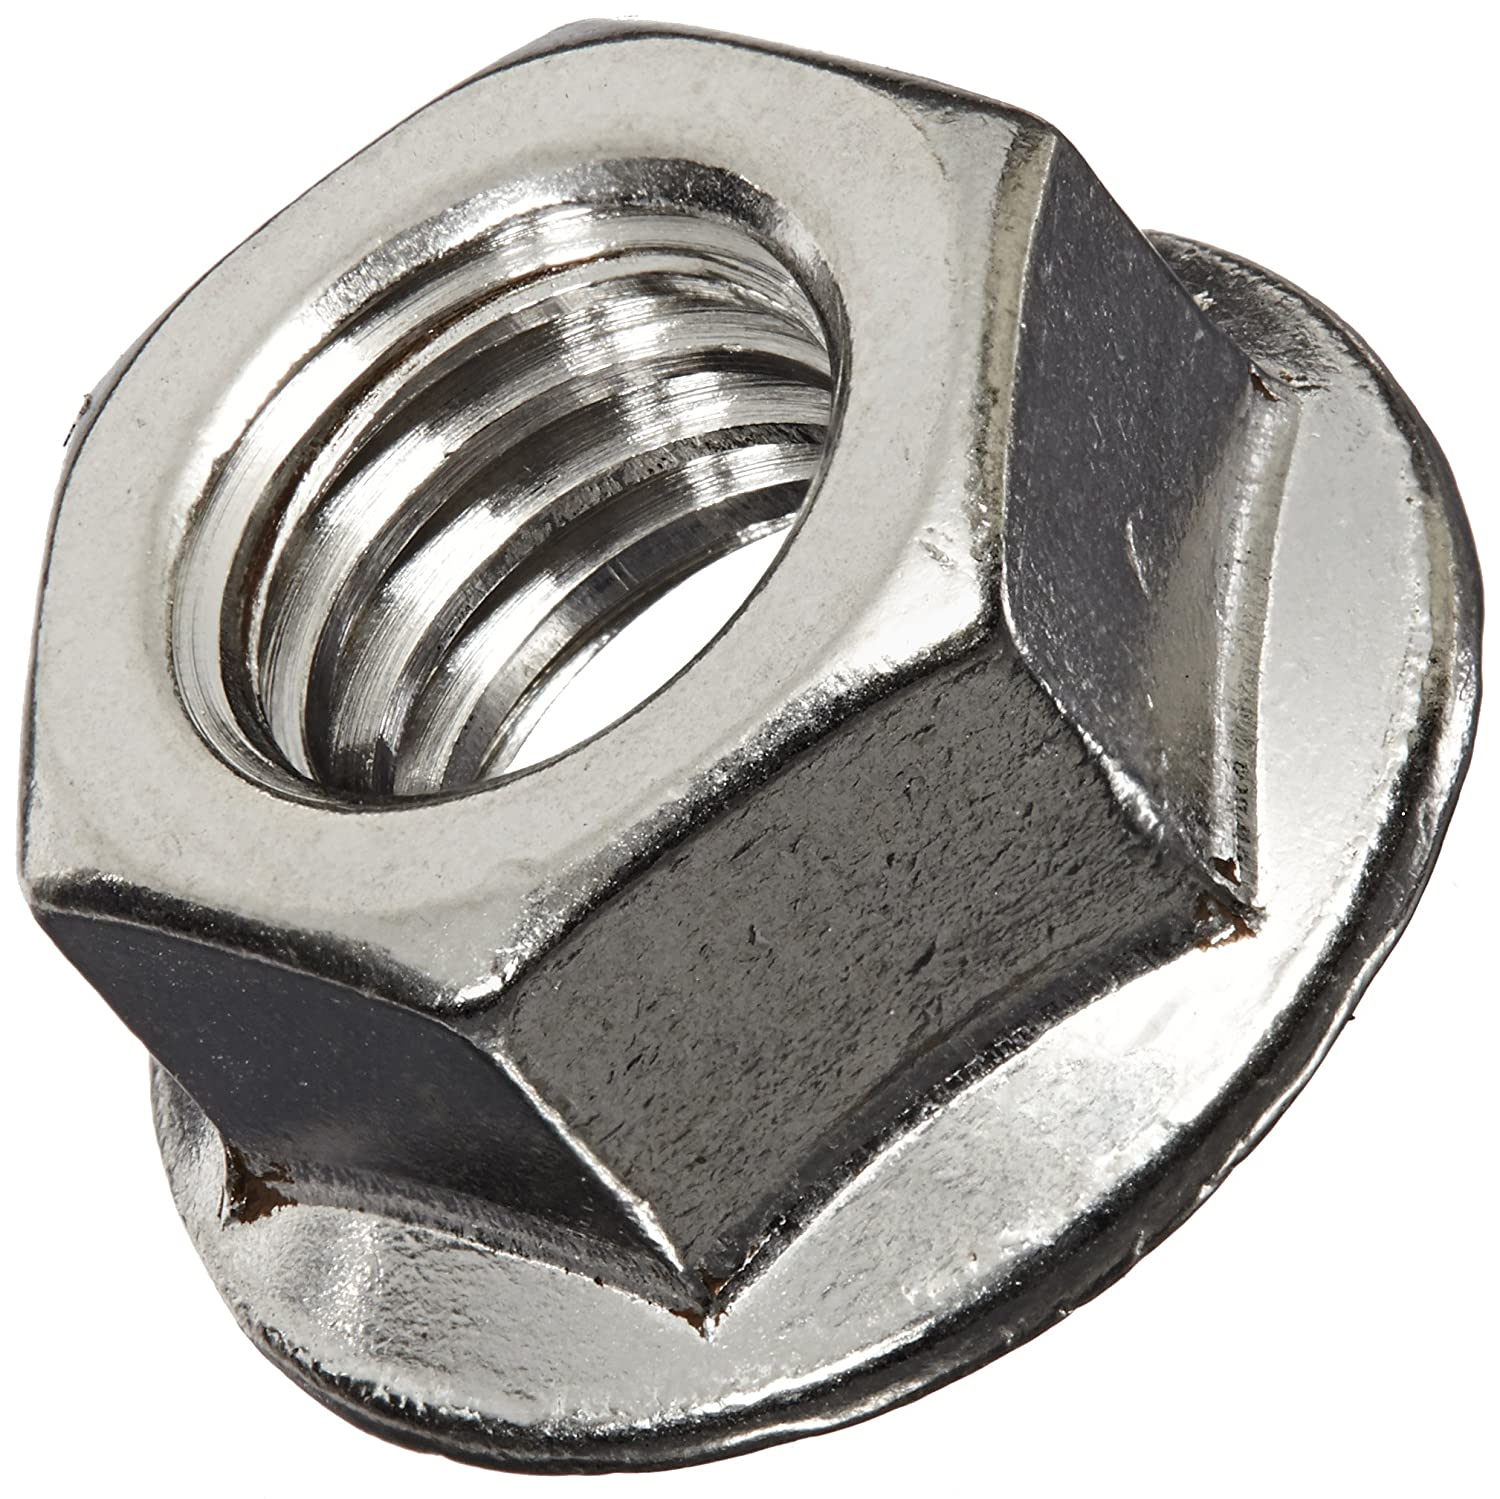 Stainless Steel 10-32 Serrated Flange Nut pack of 20